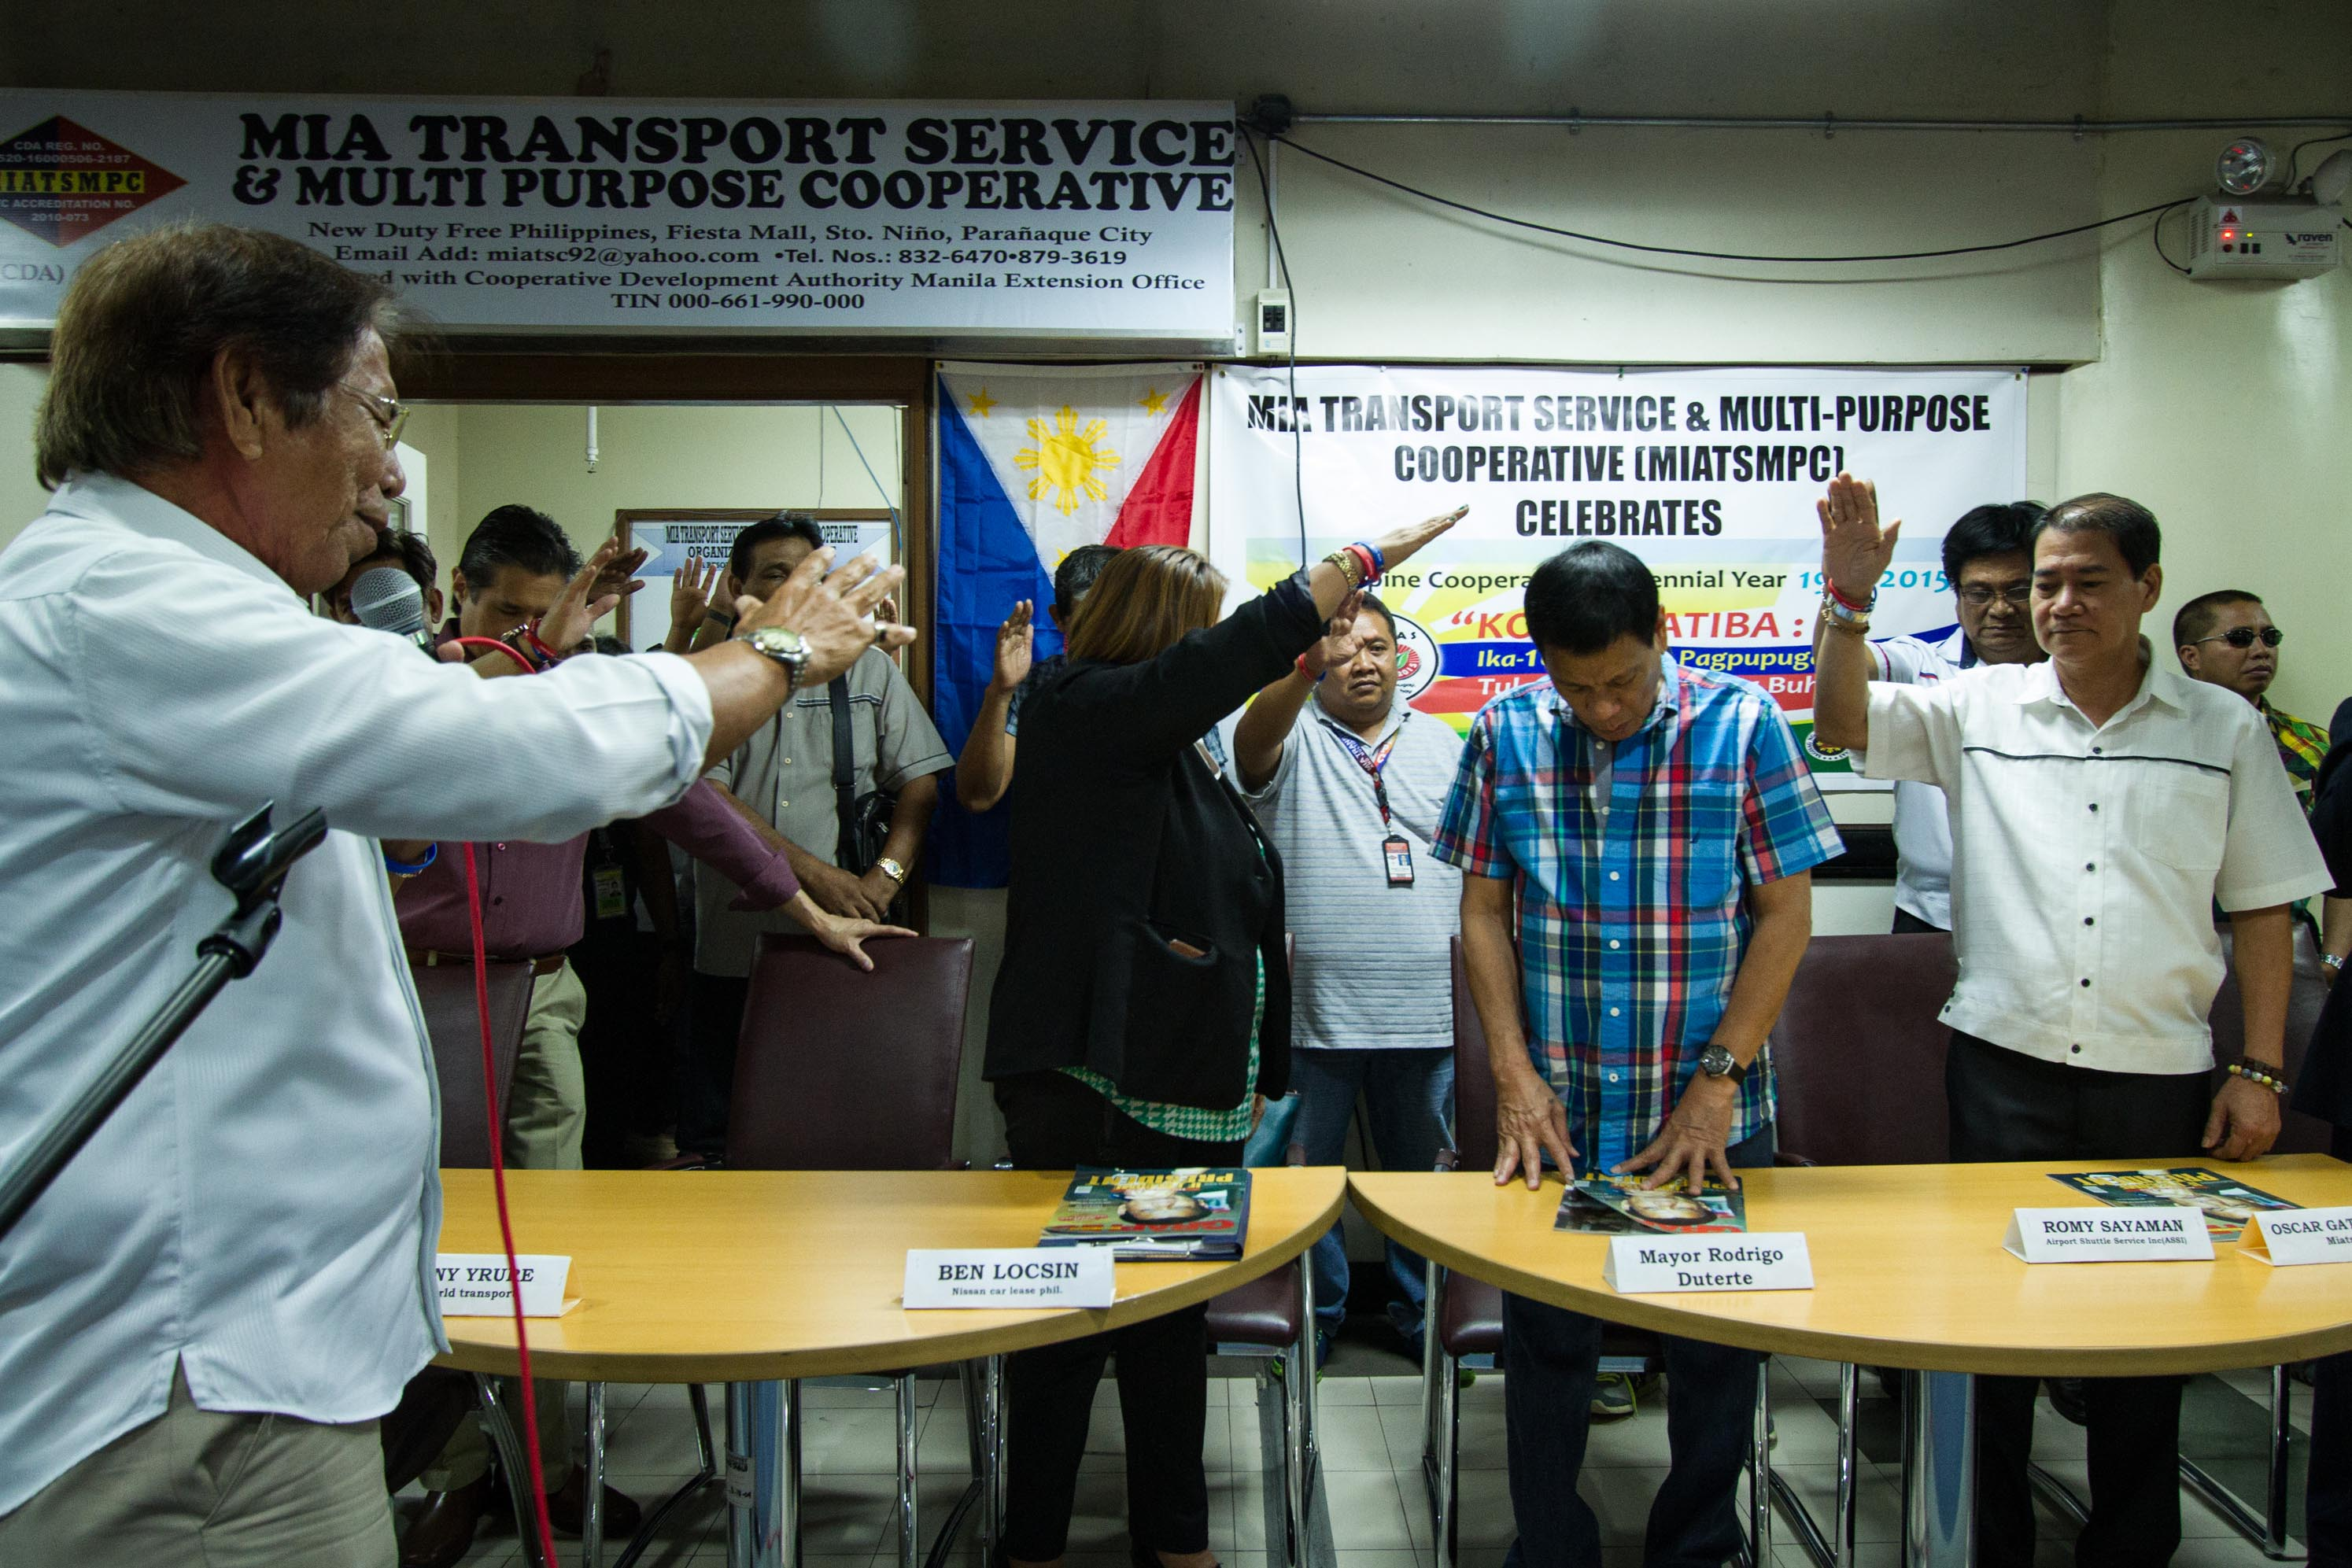 PRAYER. ATCAI members pray over the Davao City mayor during his meeting with drivers and operators at the Duty Free Fiesta Mall in Parau00f1aque City.